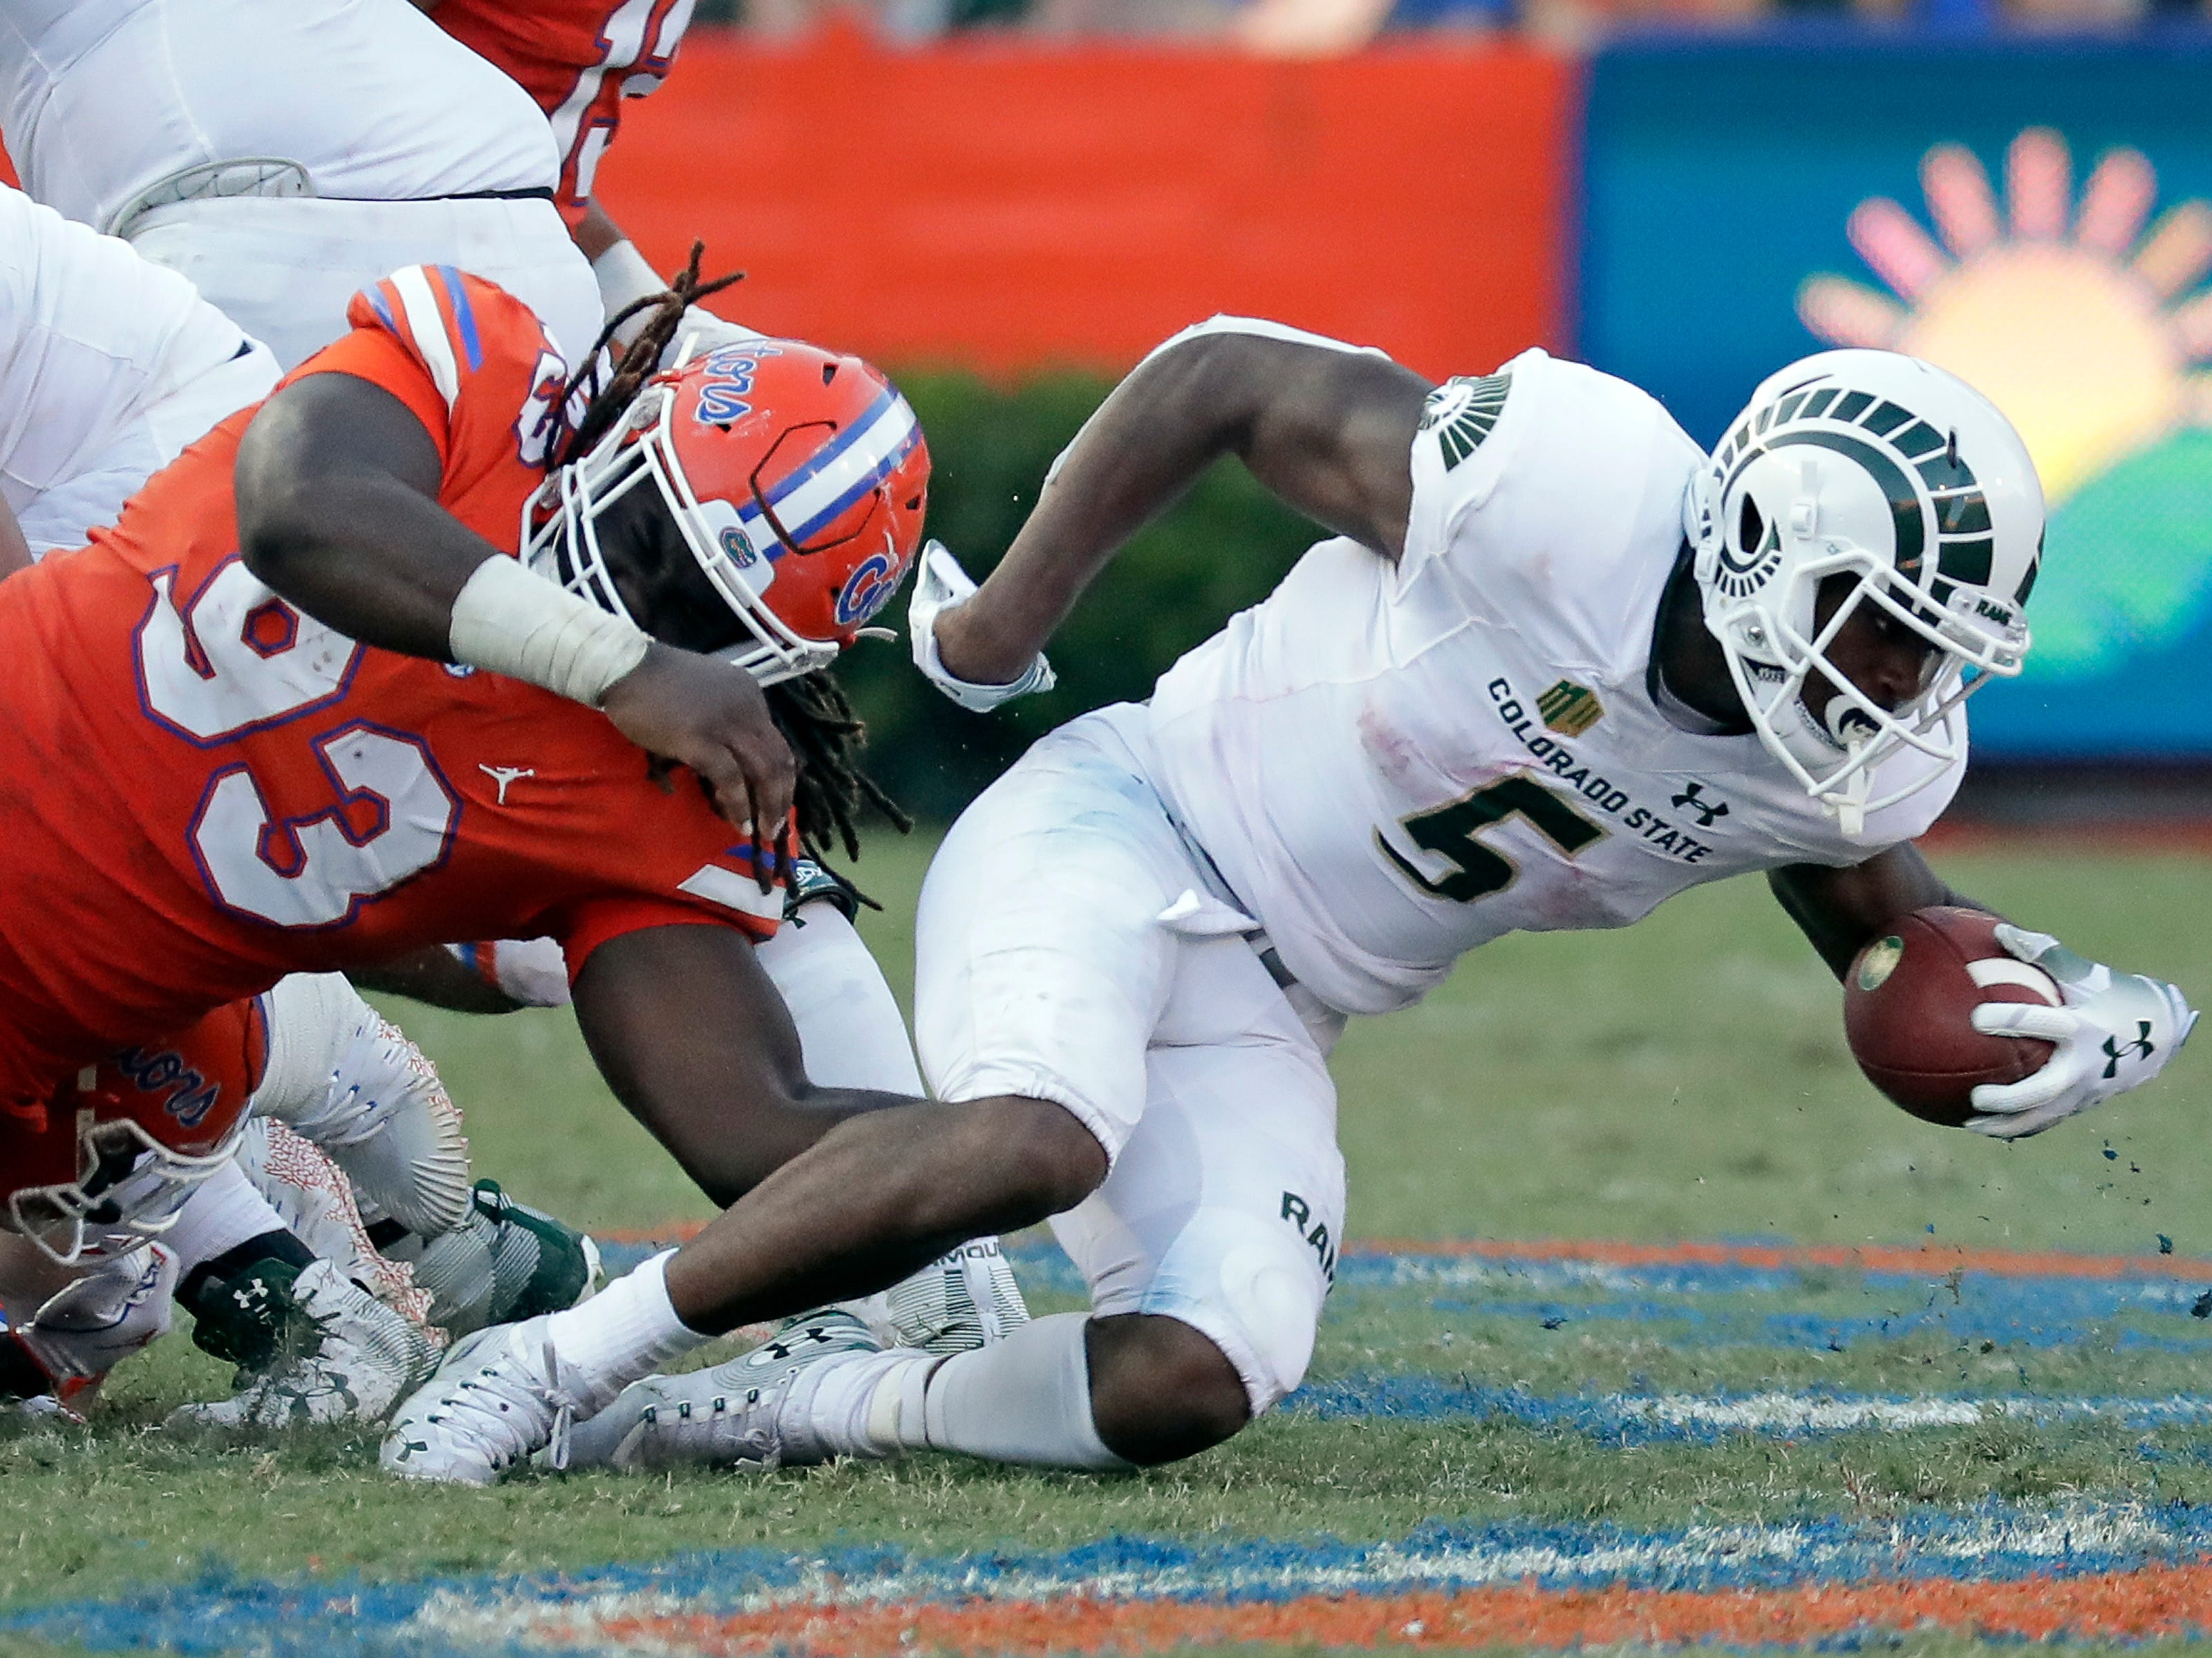 Colorado State running back Marvin Kinsey Jr. (5) is tackled by Florida defensive end Elijah Conliffe (93) during the second half of an NCAA college football game, Saturday, Sept. 15, 2018, in Gainesville, Fla. (AP Photo/John Raoux)